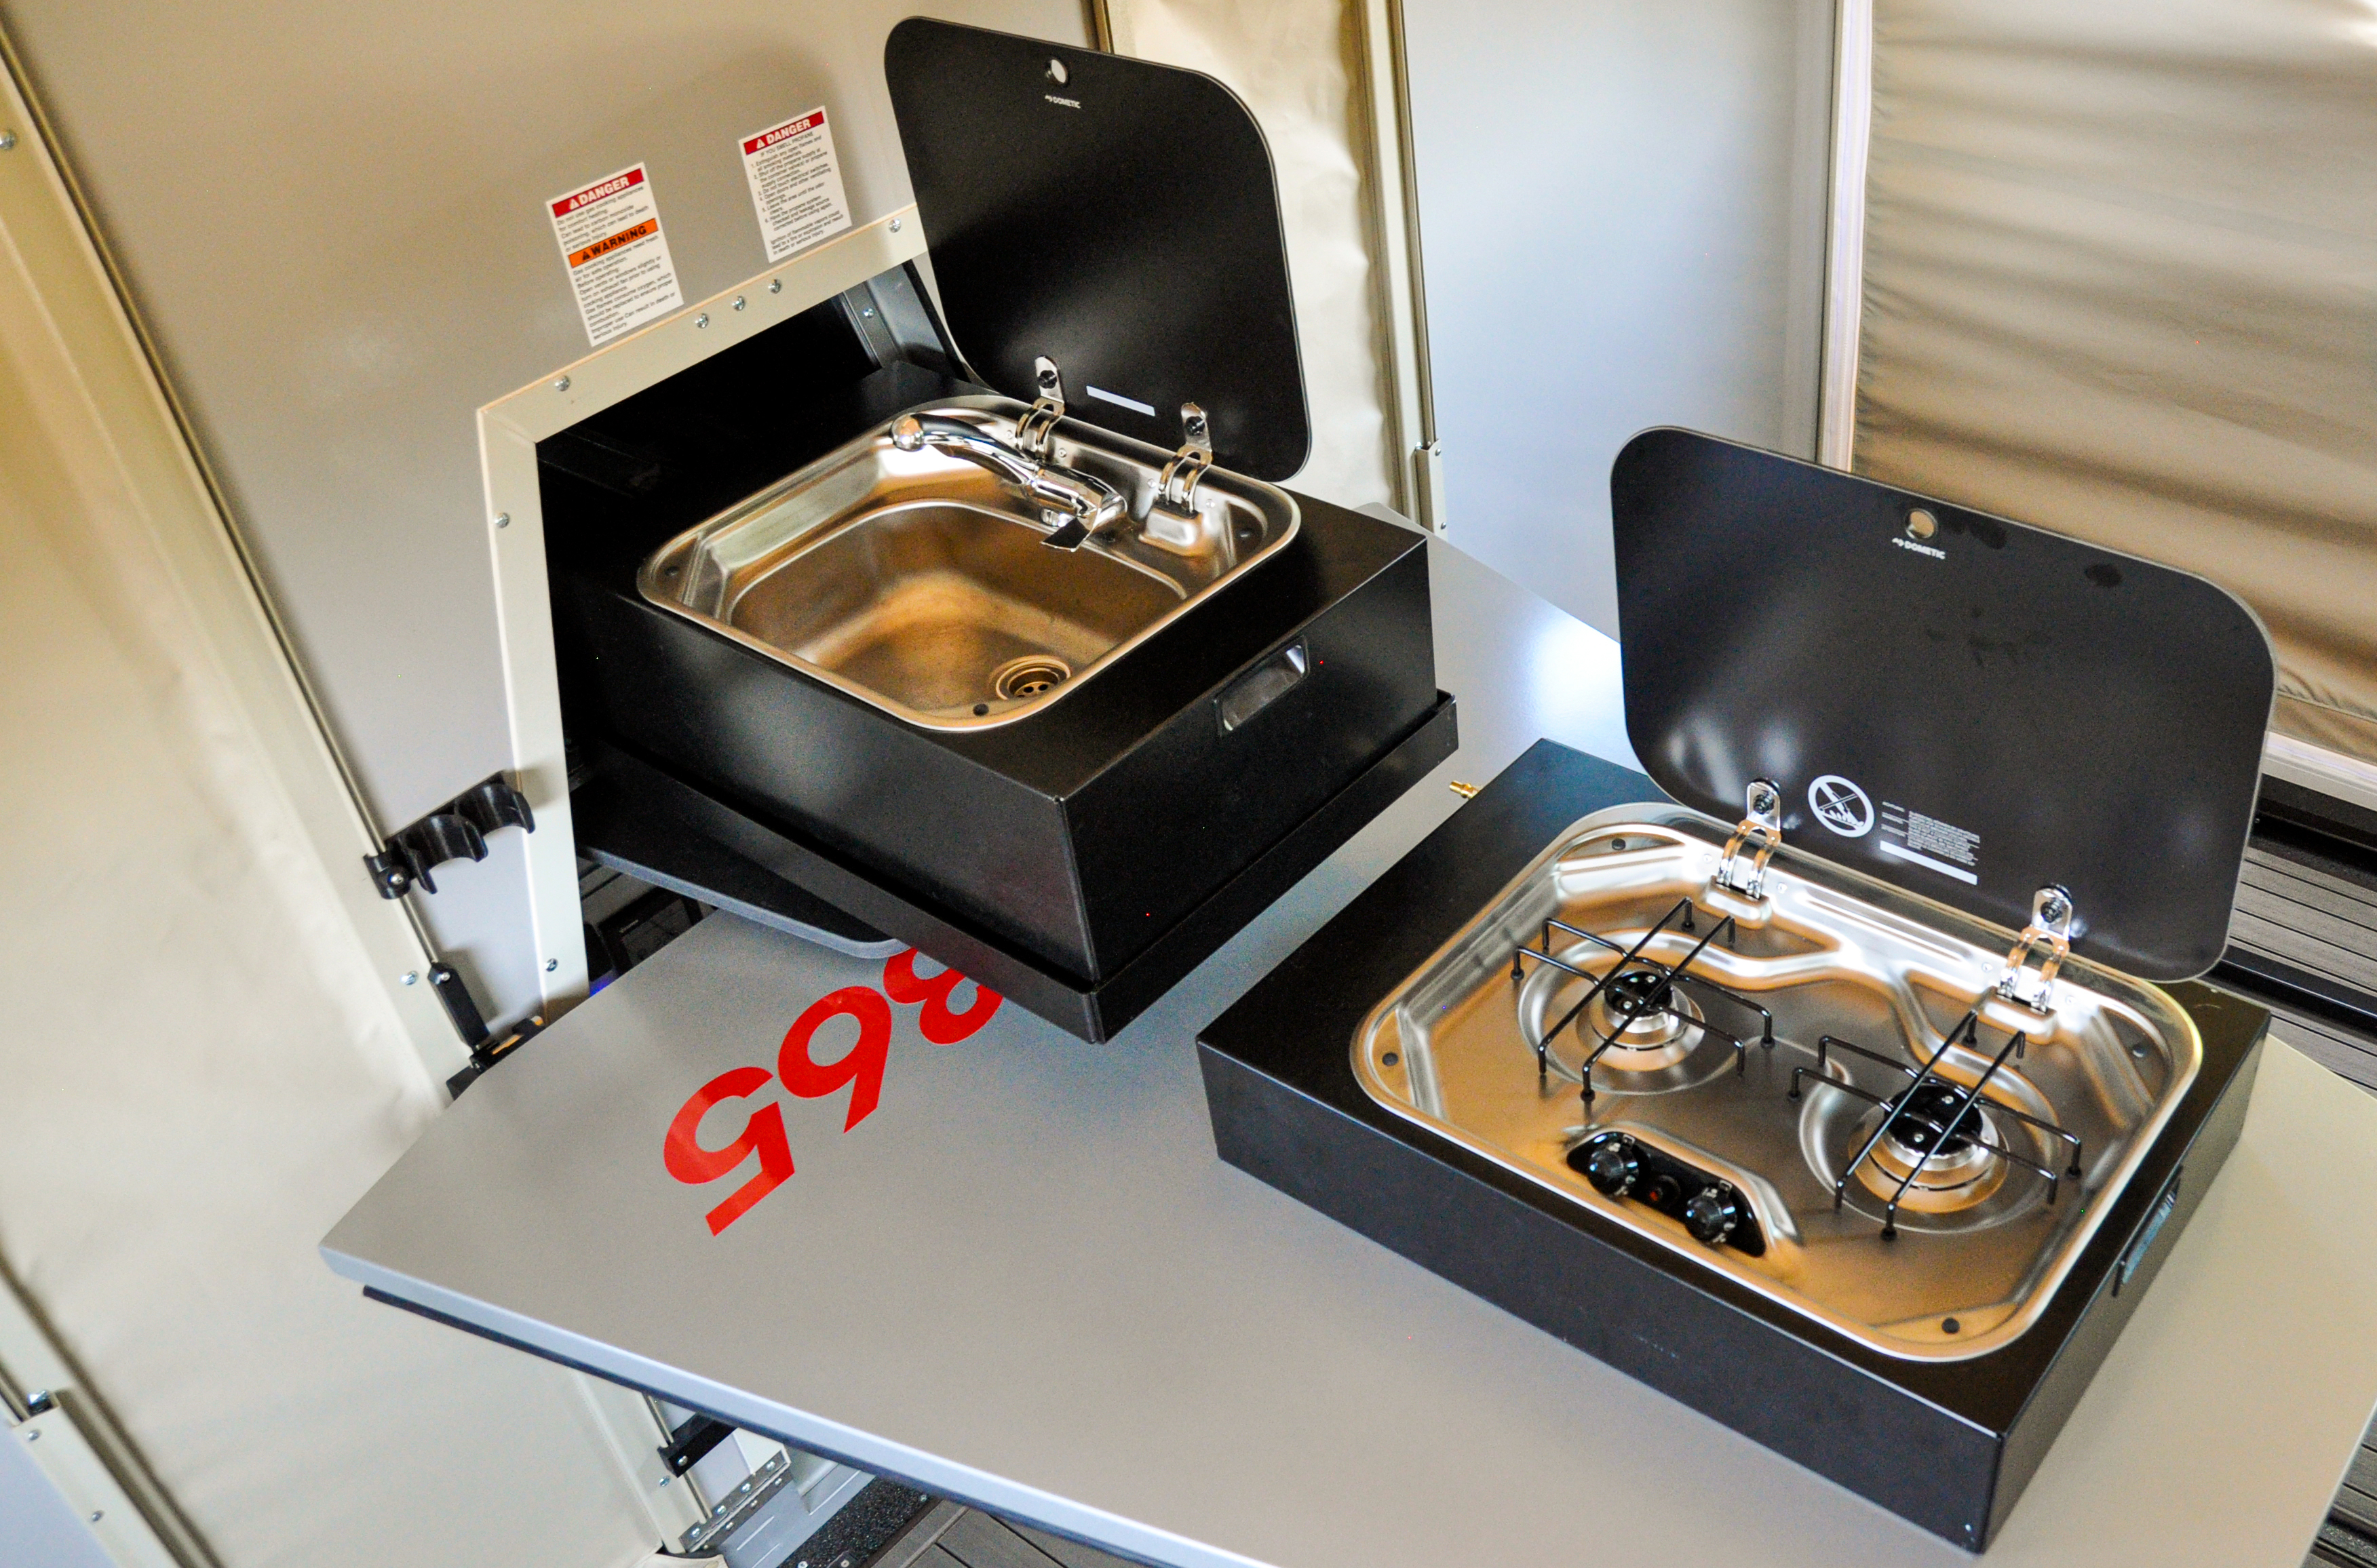 TWO-BURNER, PORTABLE PULL-OUT STOVE